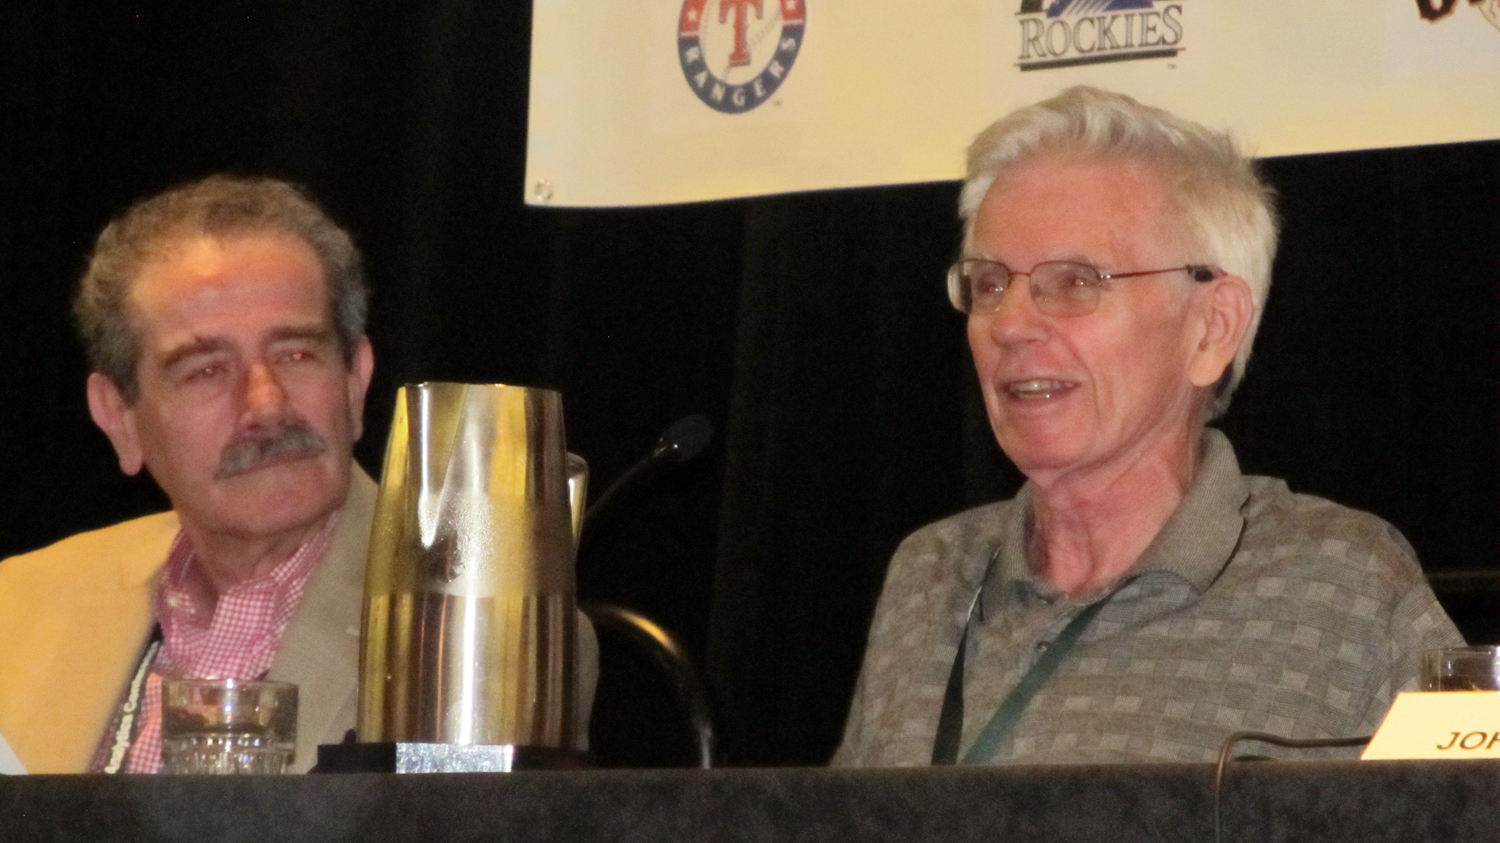 Frequent collaborators were panelists at the 2015 SABR Analytics Conference in Phoenix.